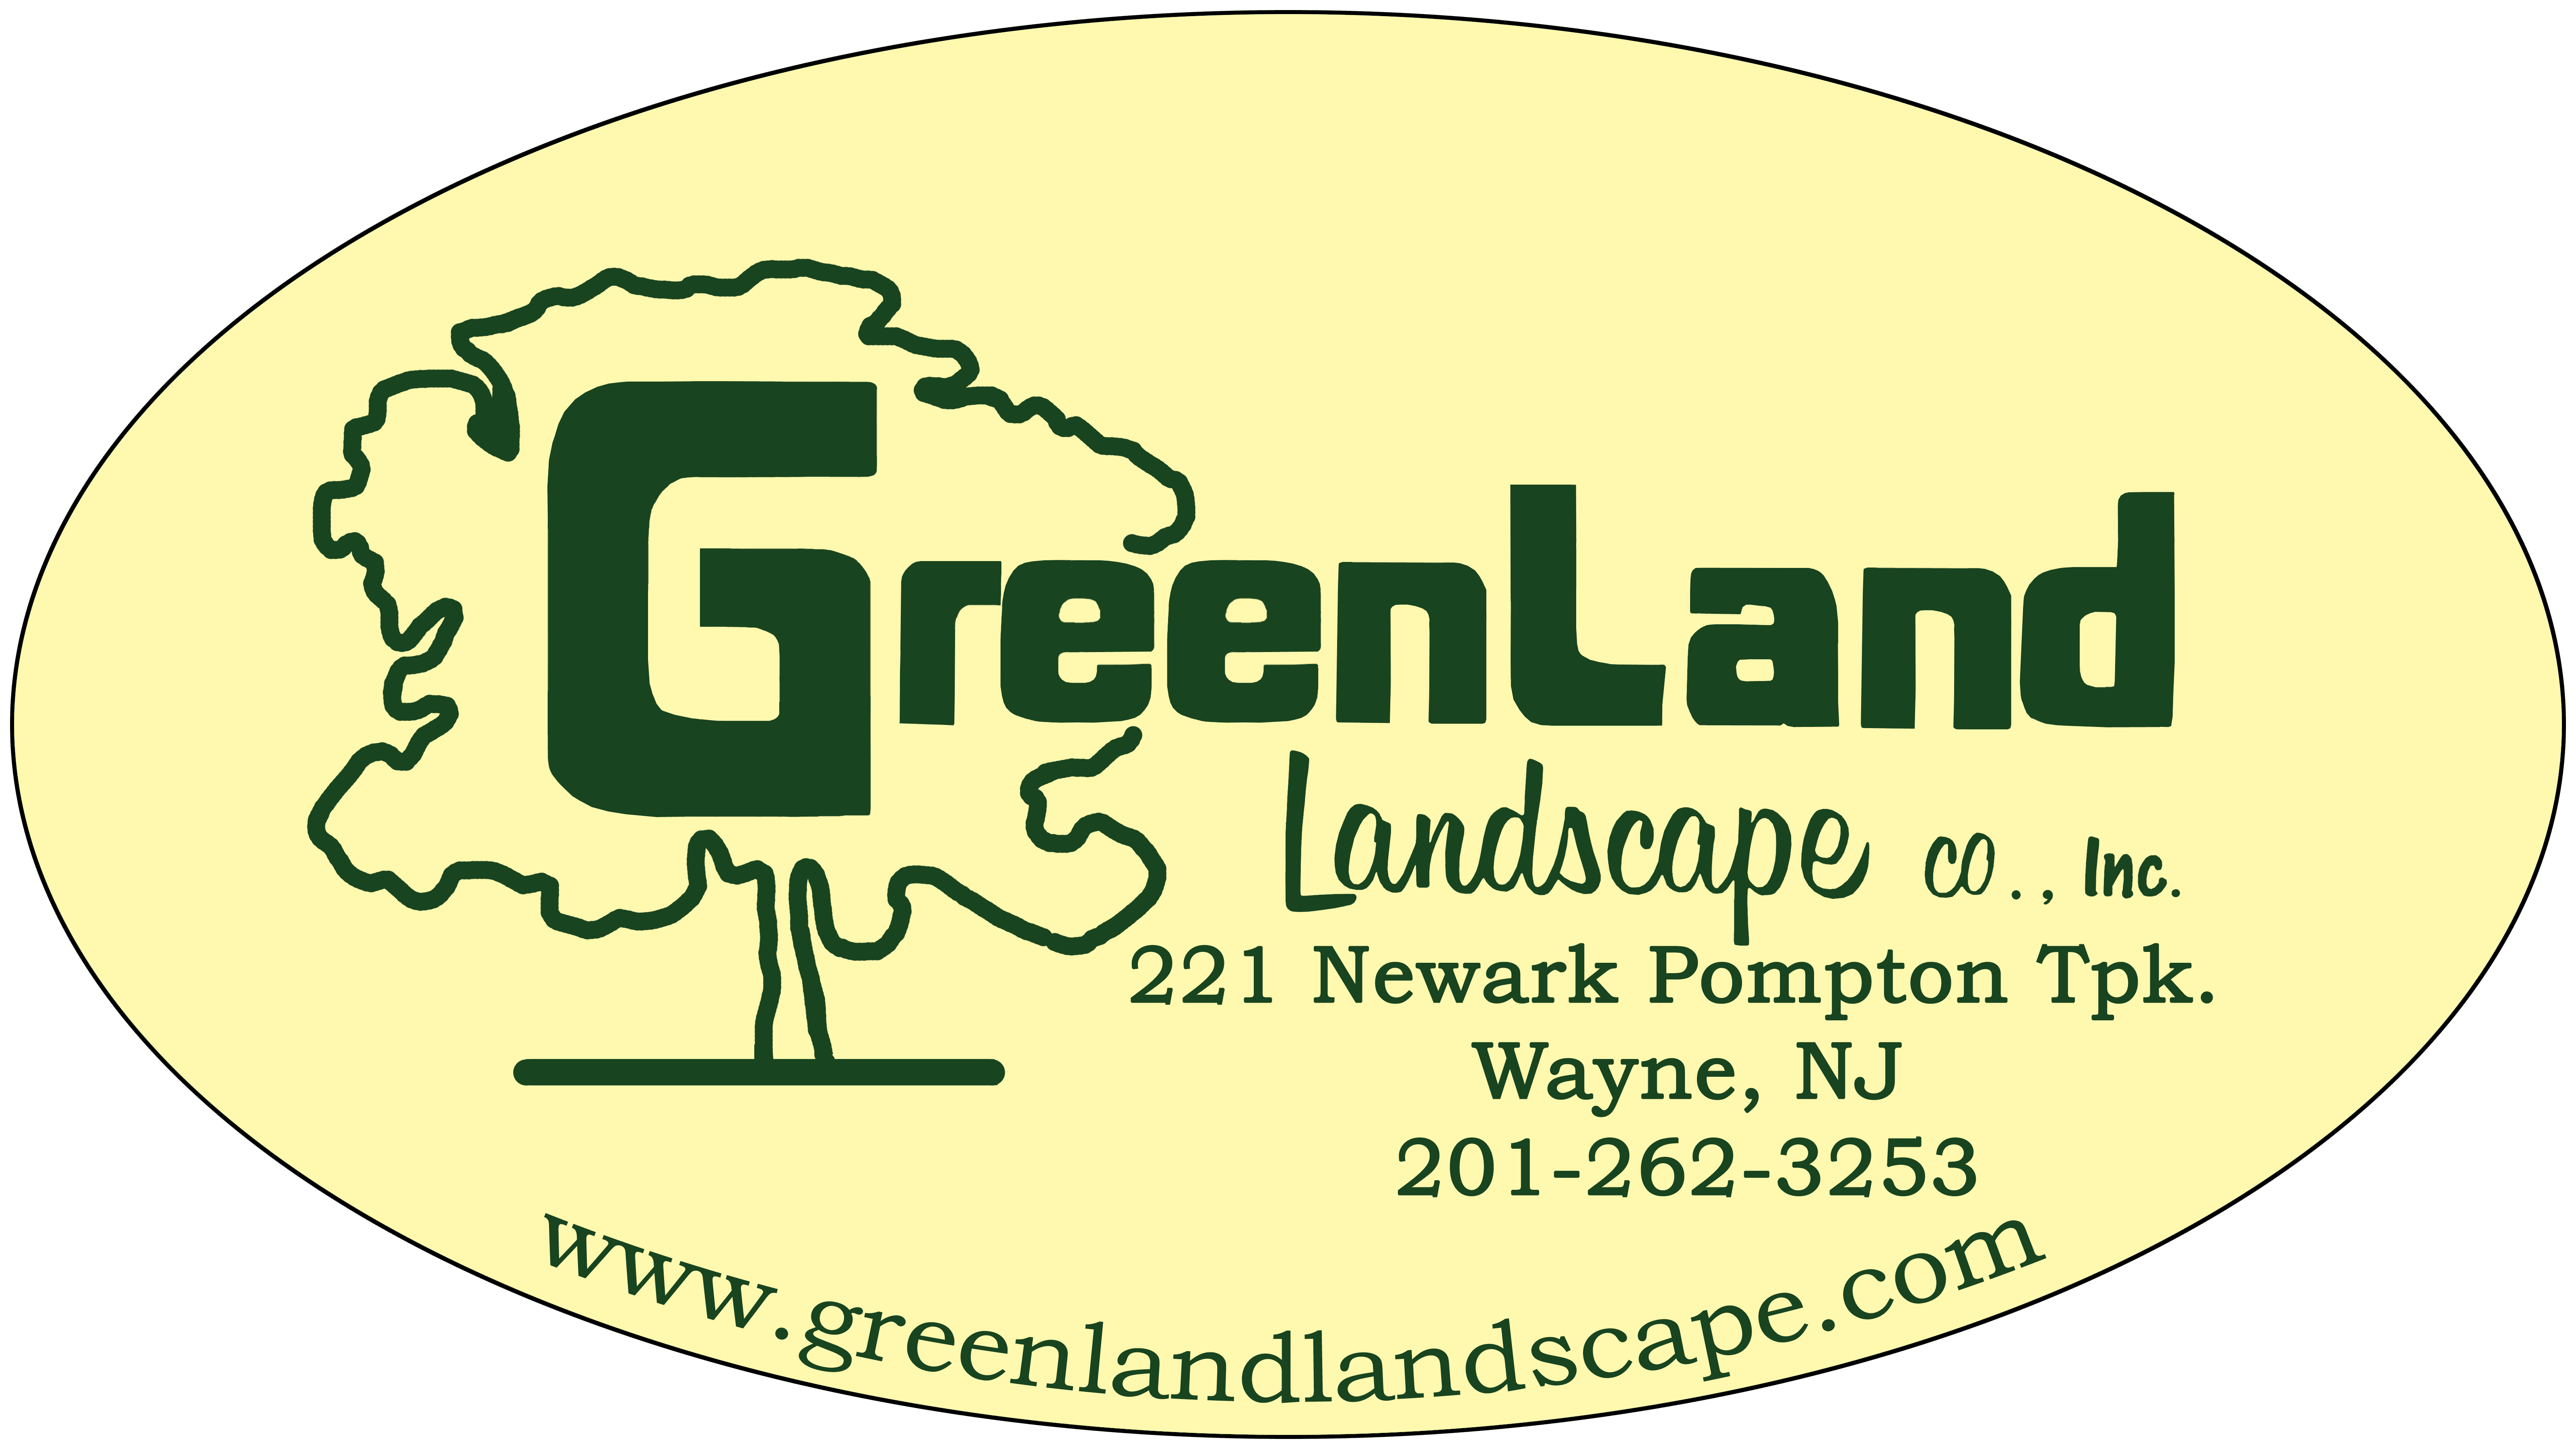 Irrigation drawing landscape architecture construction. Greenland company inc